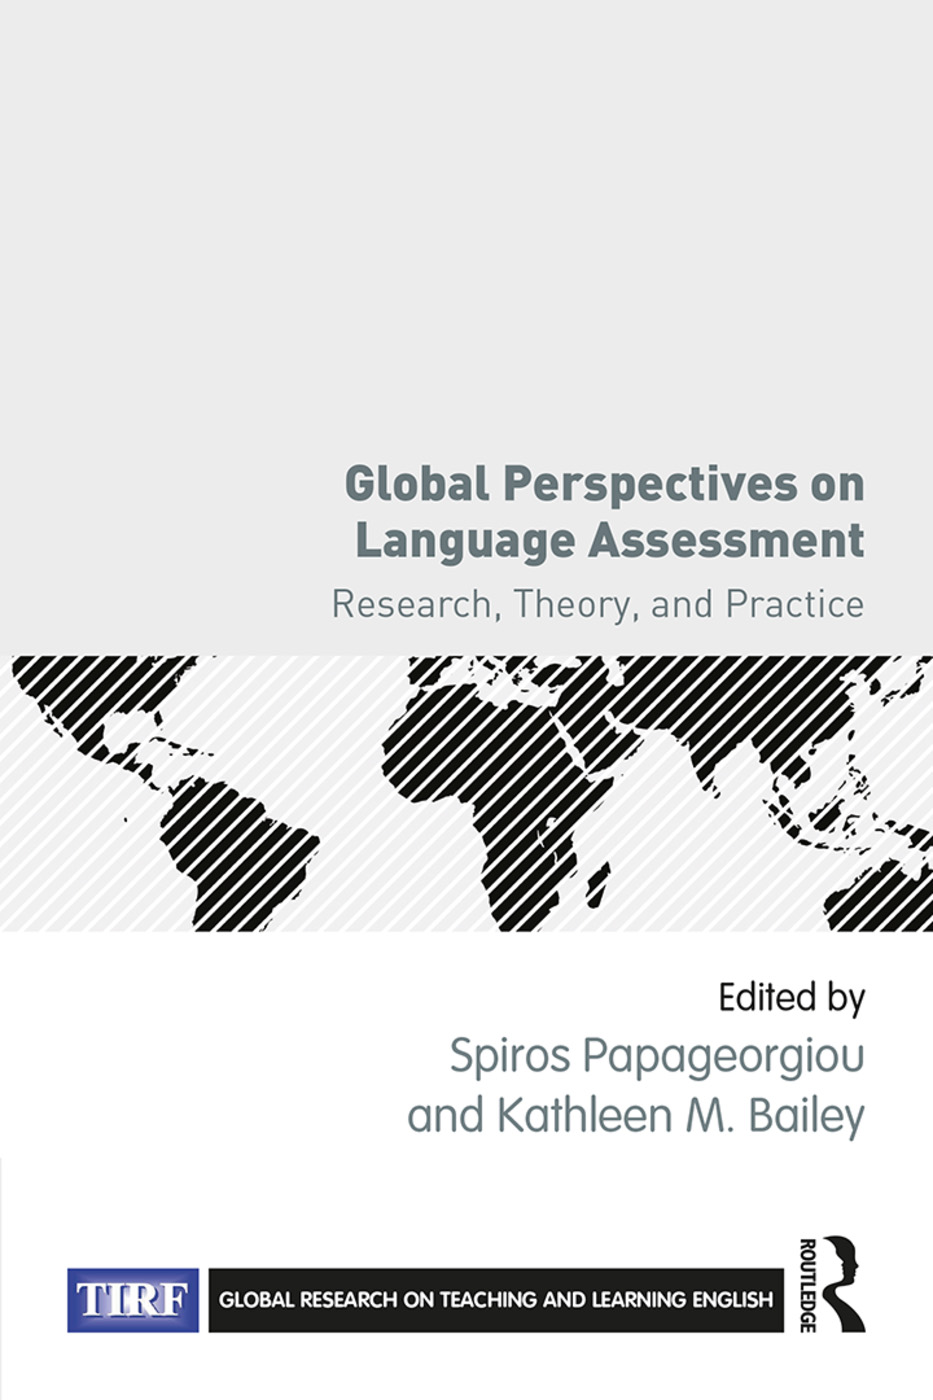 https://www.routledge.com/Global-Research-on-Teaching-and-Learning-English/book-series/TIRF